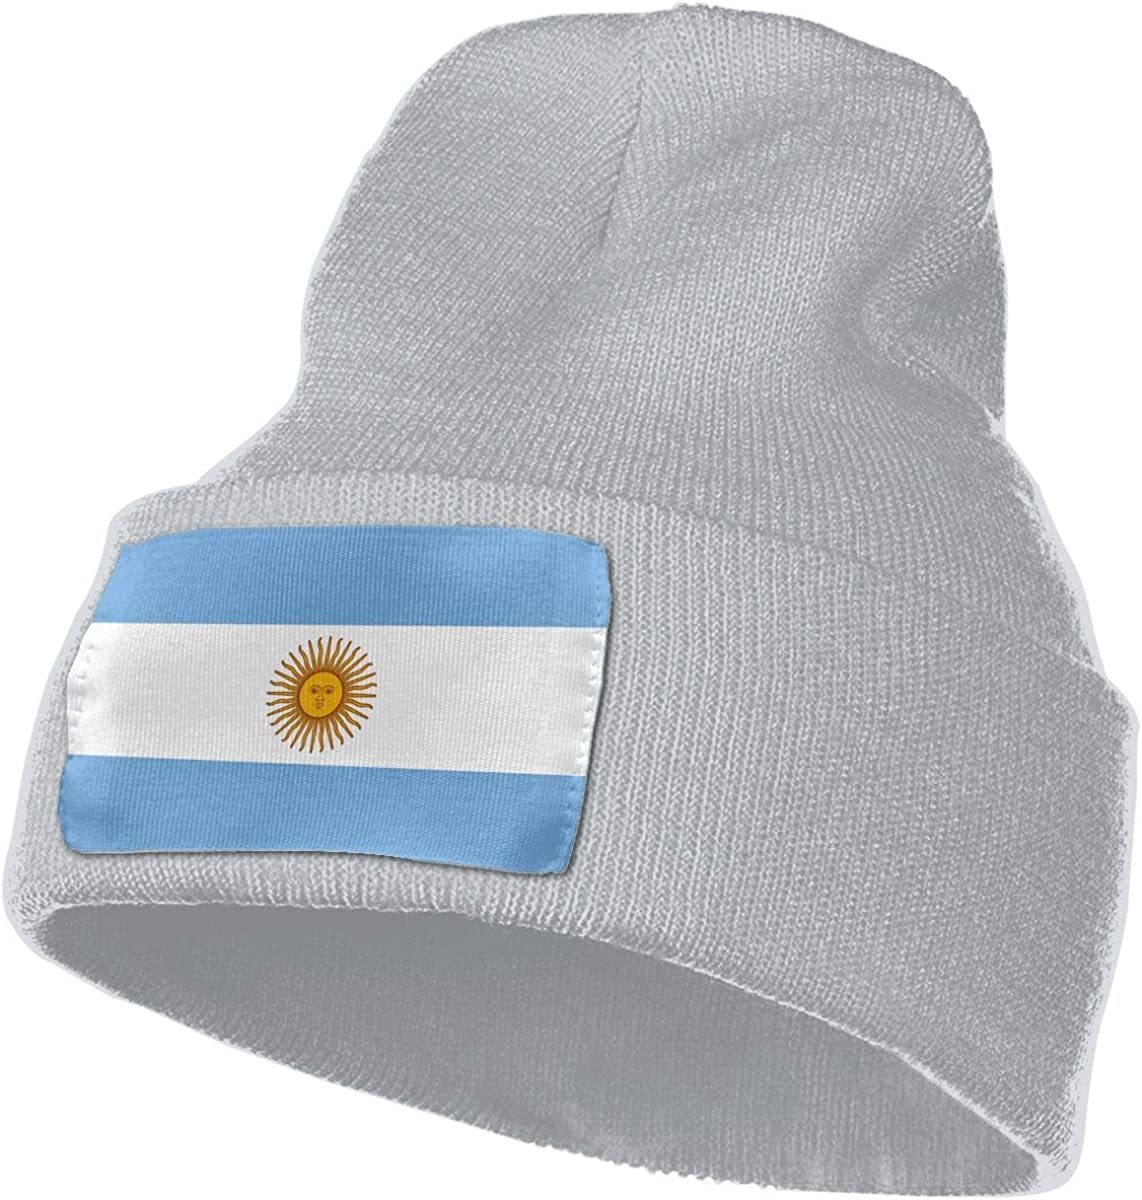 COLLJL-8 Unisex Argentina Flag Outdoor Warm Knit Beanies Hat Soft Winter Skull Caps